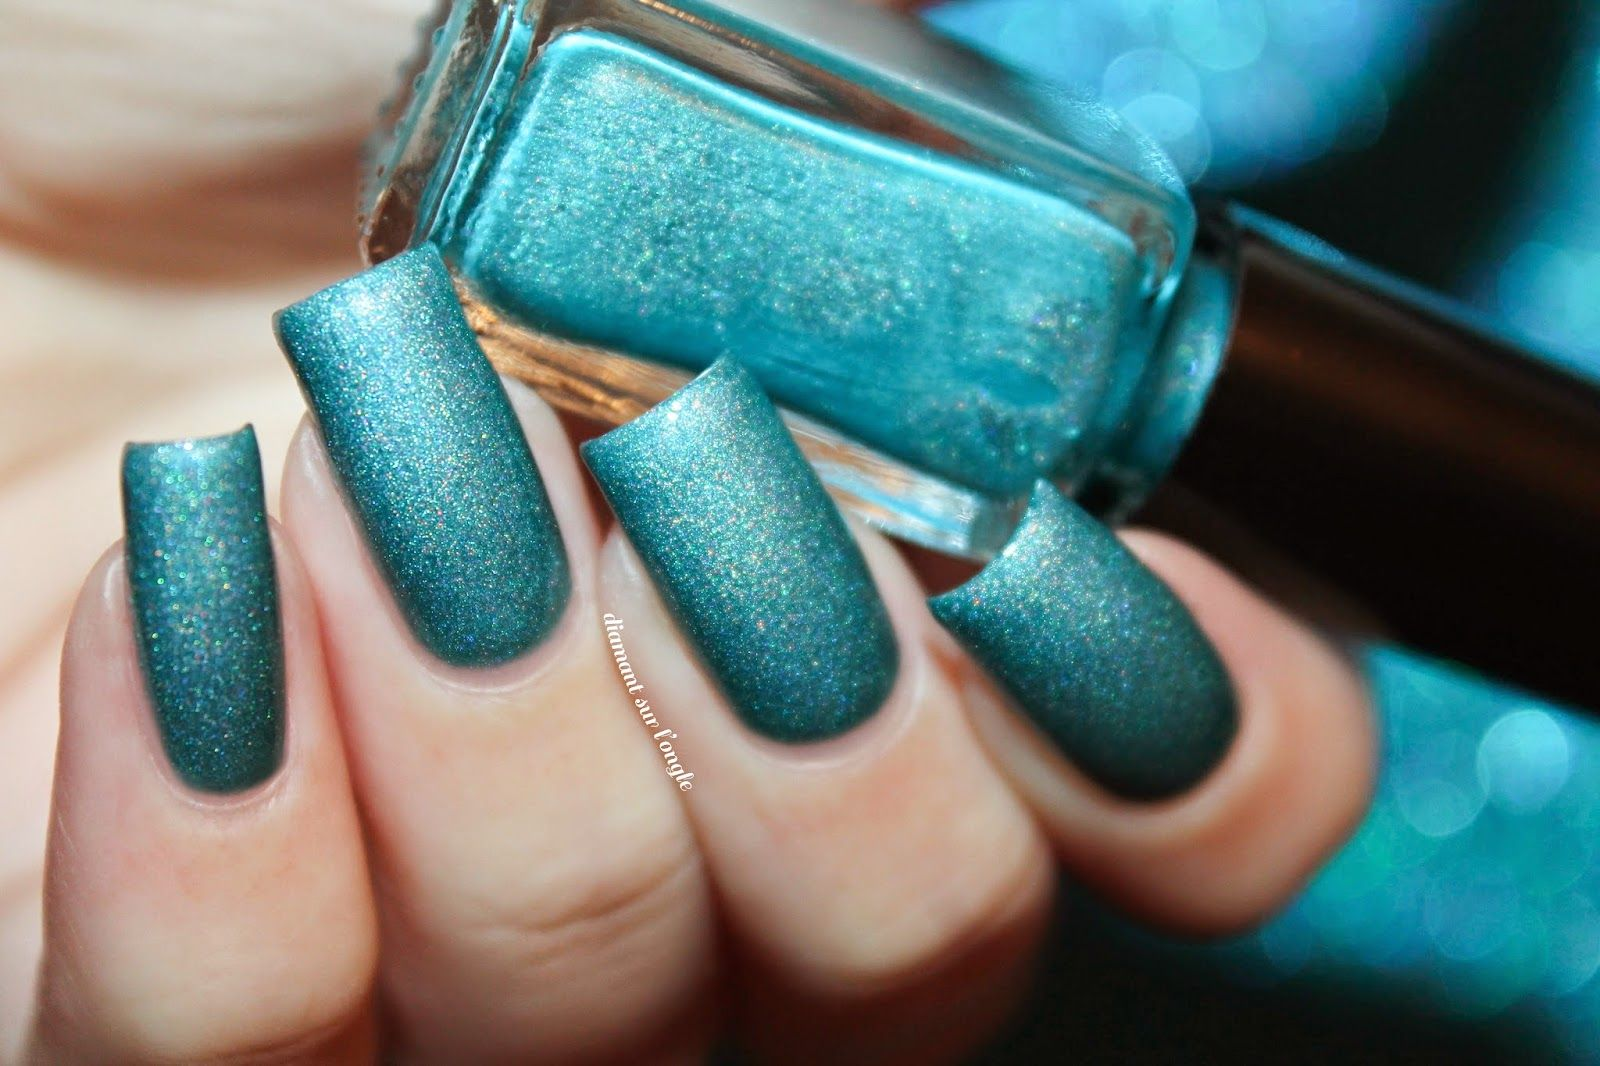 Swatch of a teal holographic franken nail polish by diamant sur l ...